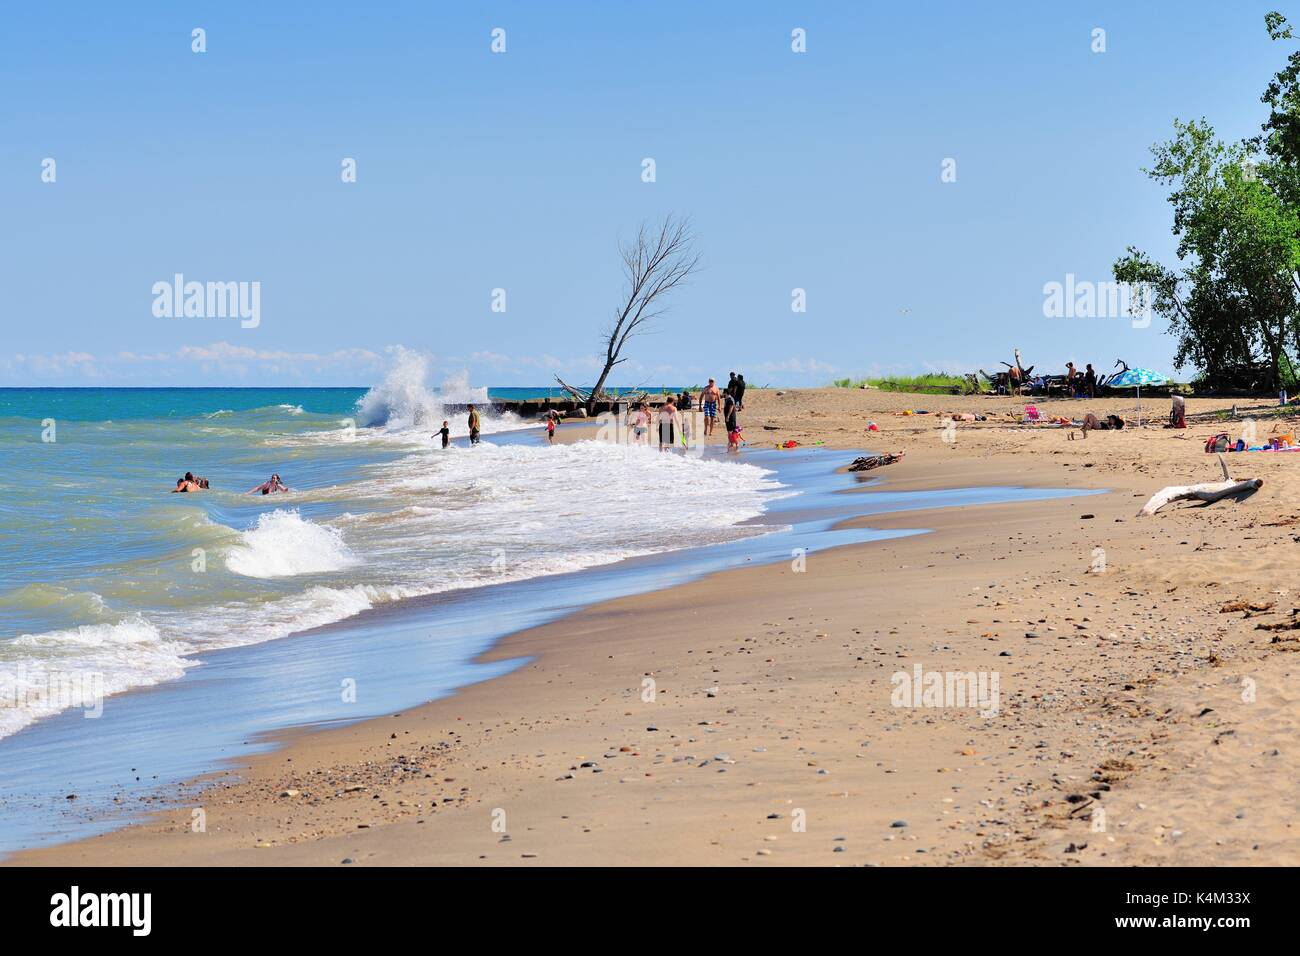 A few people play or walk in the pounding surf or relax in the remote sand at North Beach in the Illinois Beach State Park. Winthrop Harbor, Illinois, - Stock Image